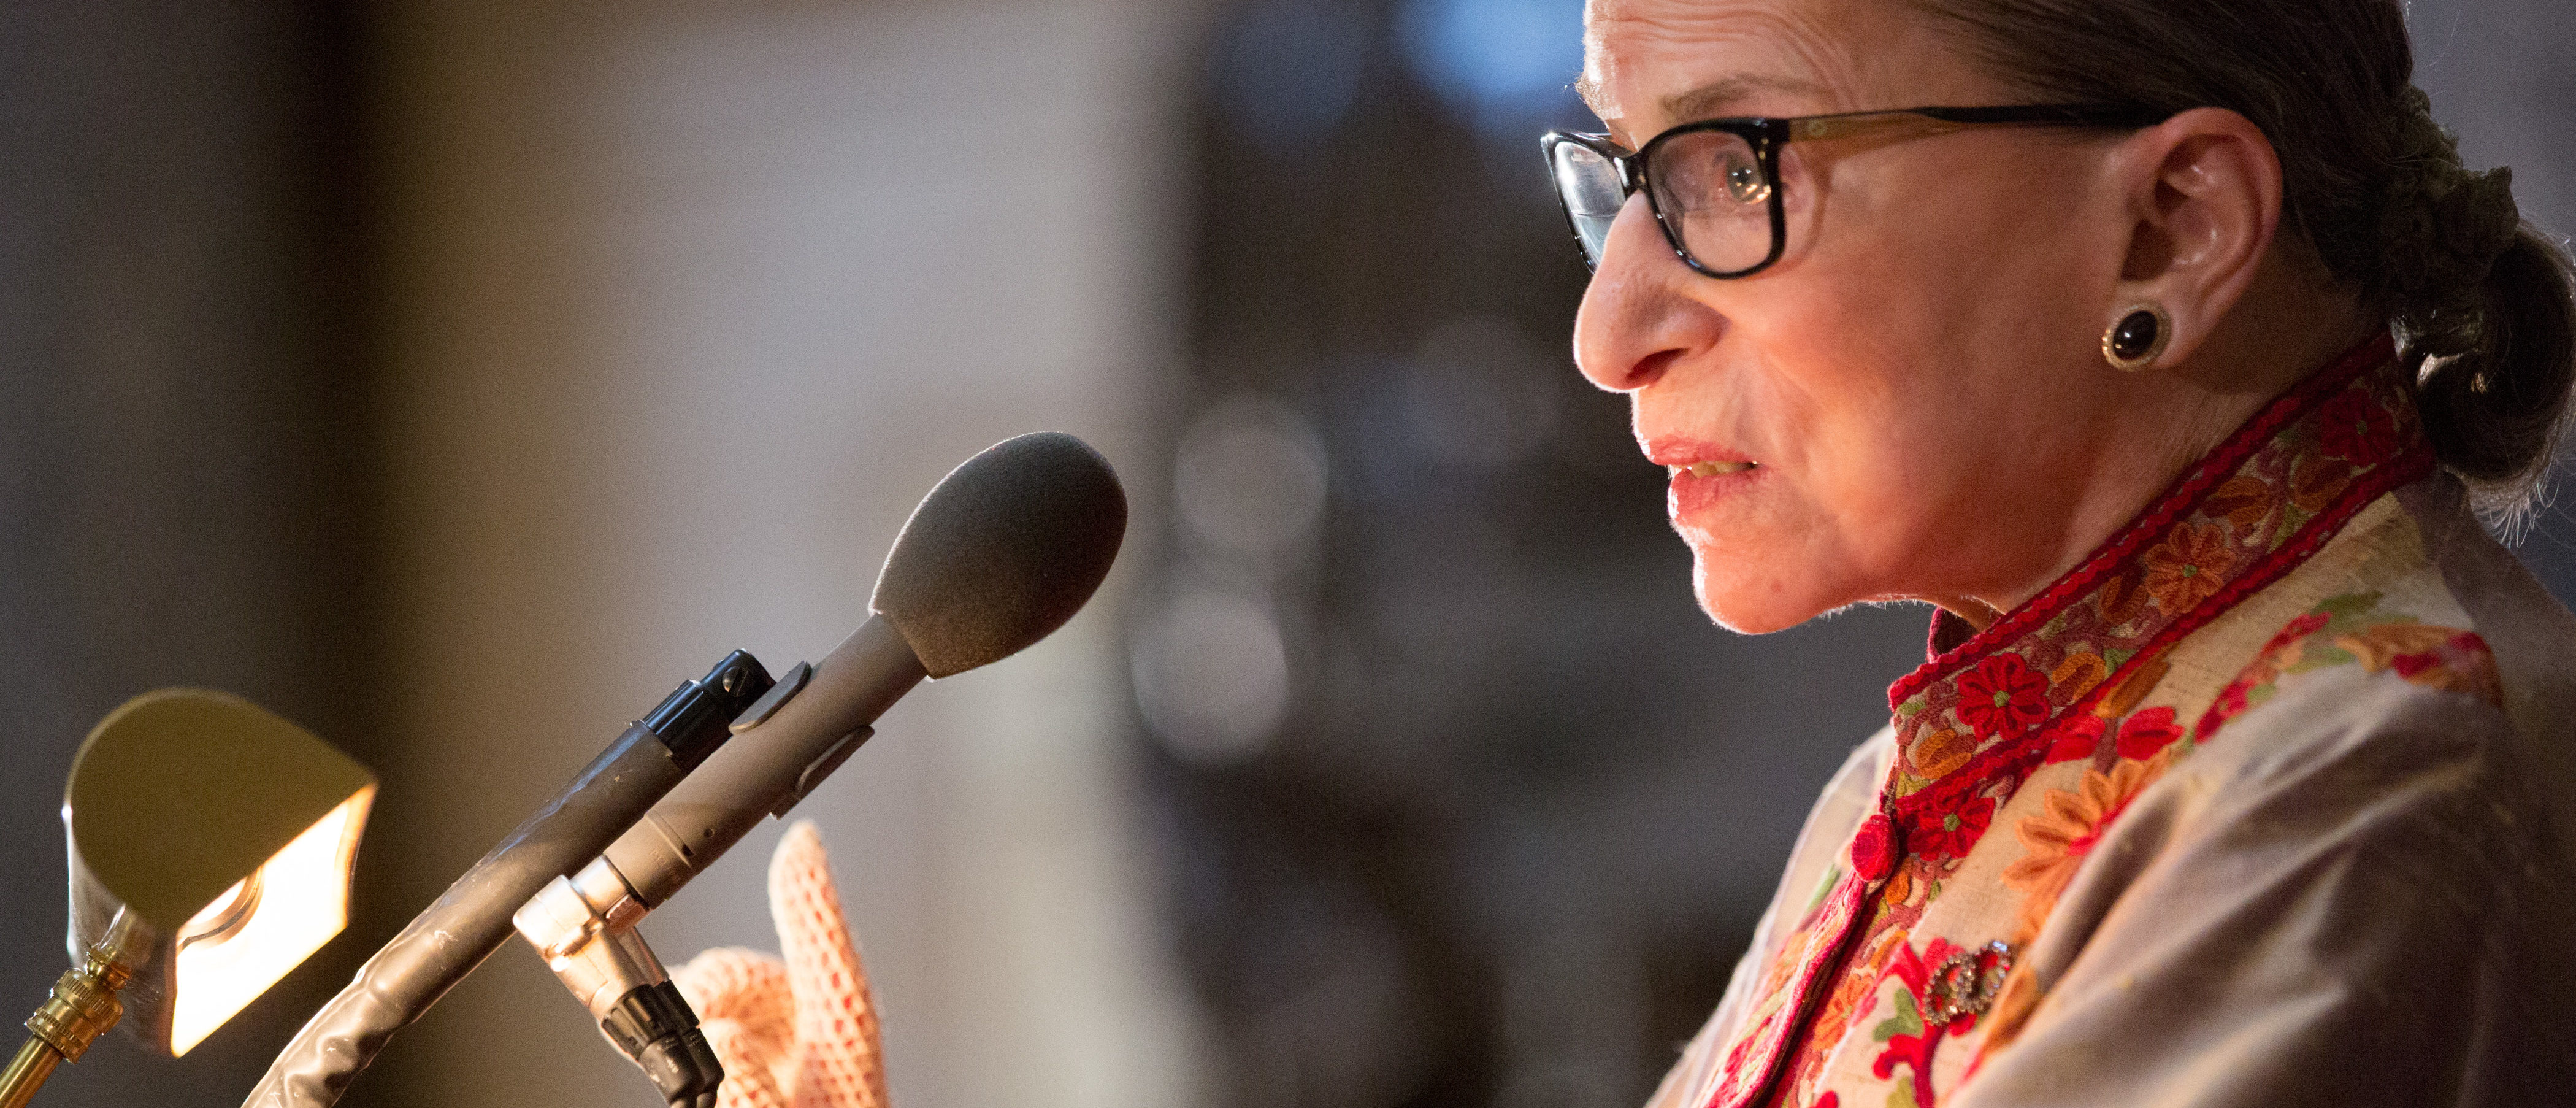 OPINION: Are Justice Ginsburg's Supreme Court Days Numbered?